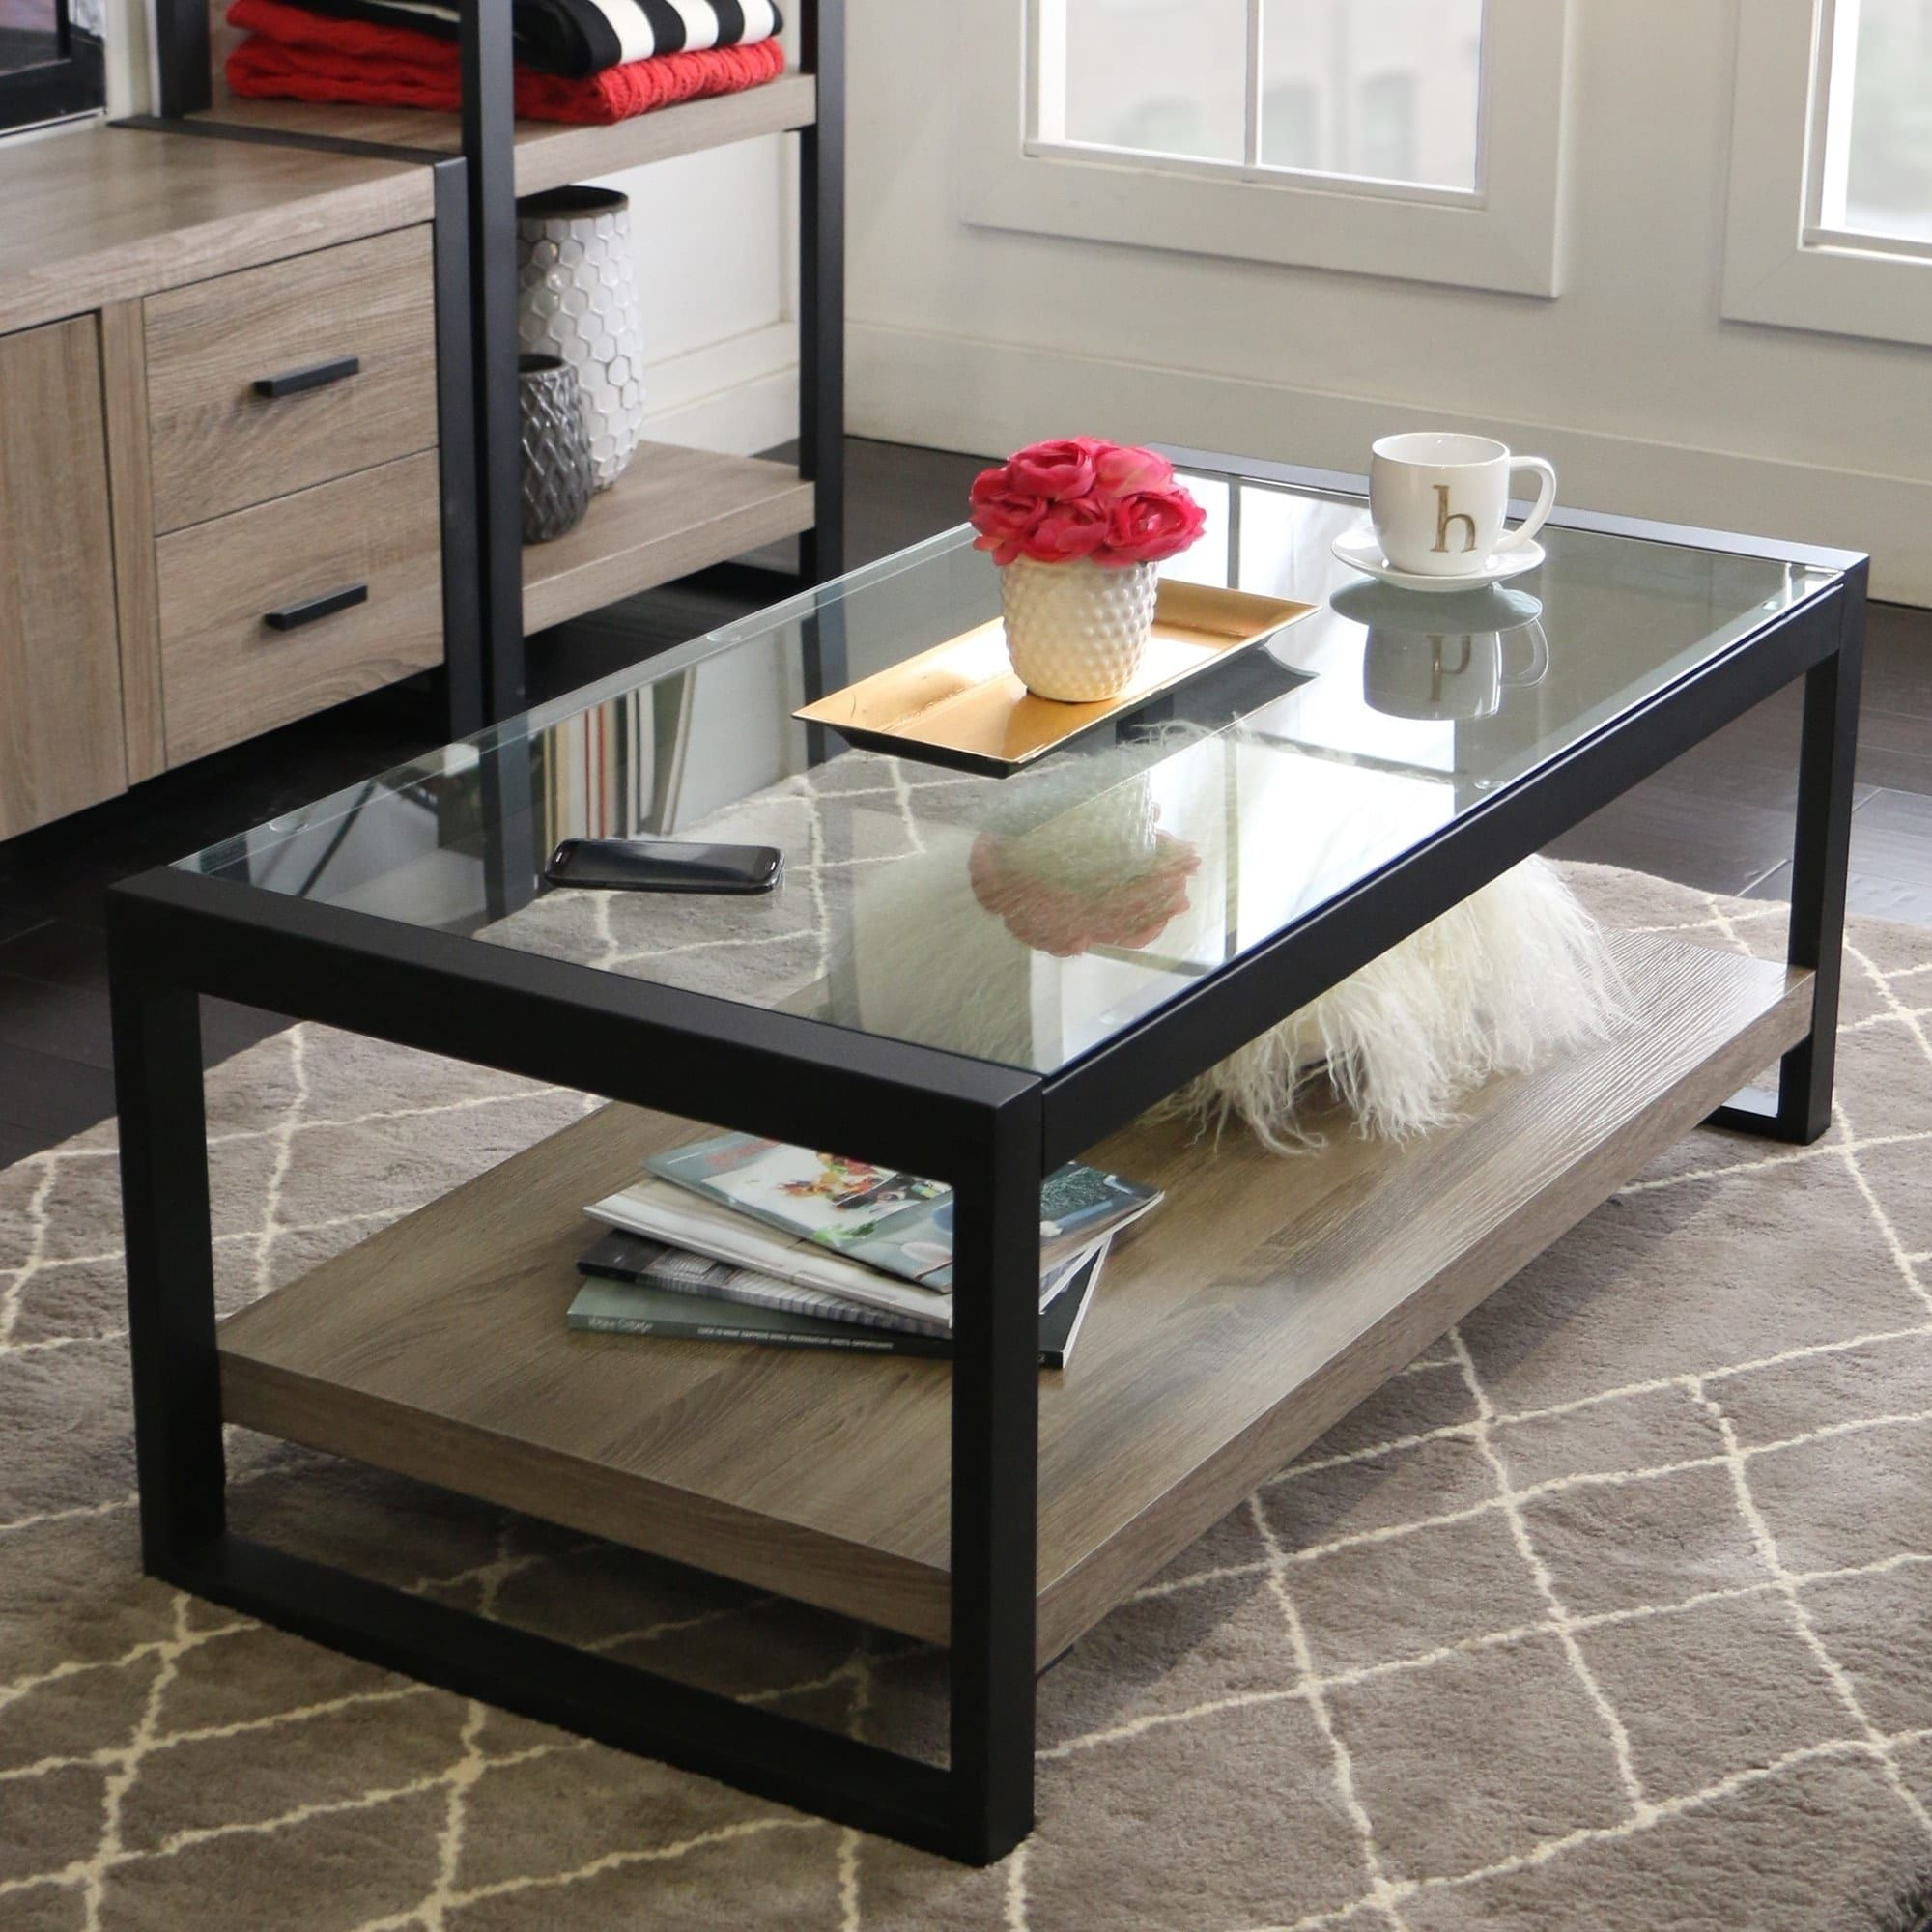 Marvelous 48 Urban Blend Coffee Table With Glass Top 48 X 24 X 18H Ncnpc Chair Design For Home Ncnpcorg